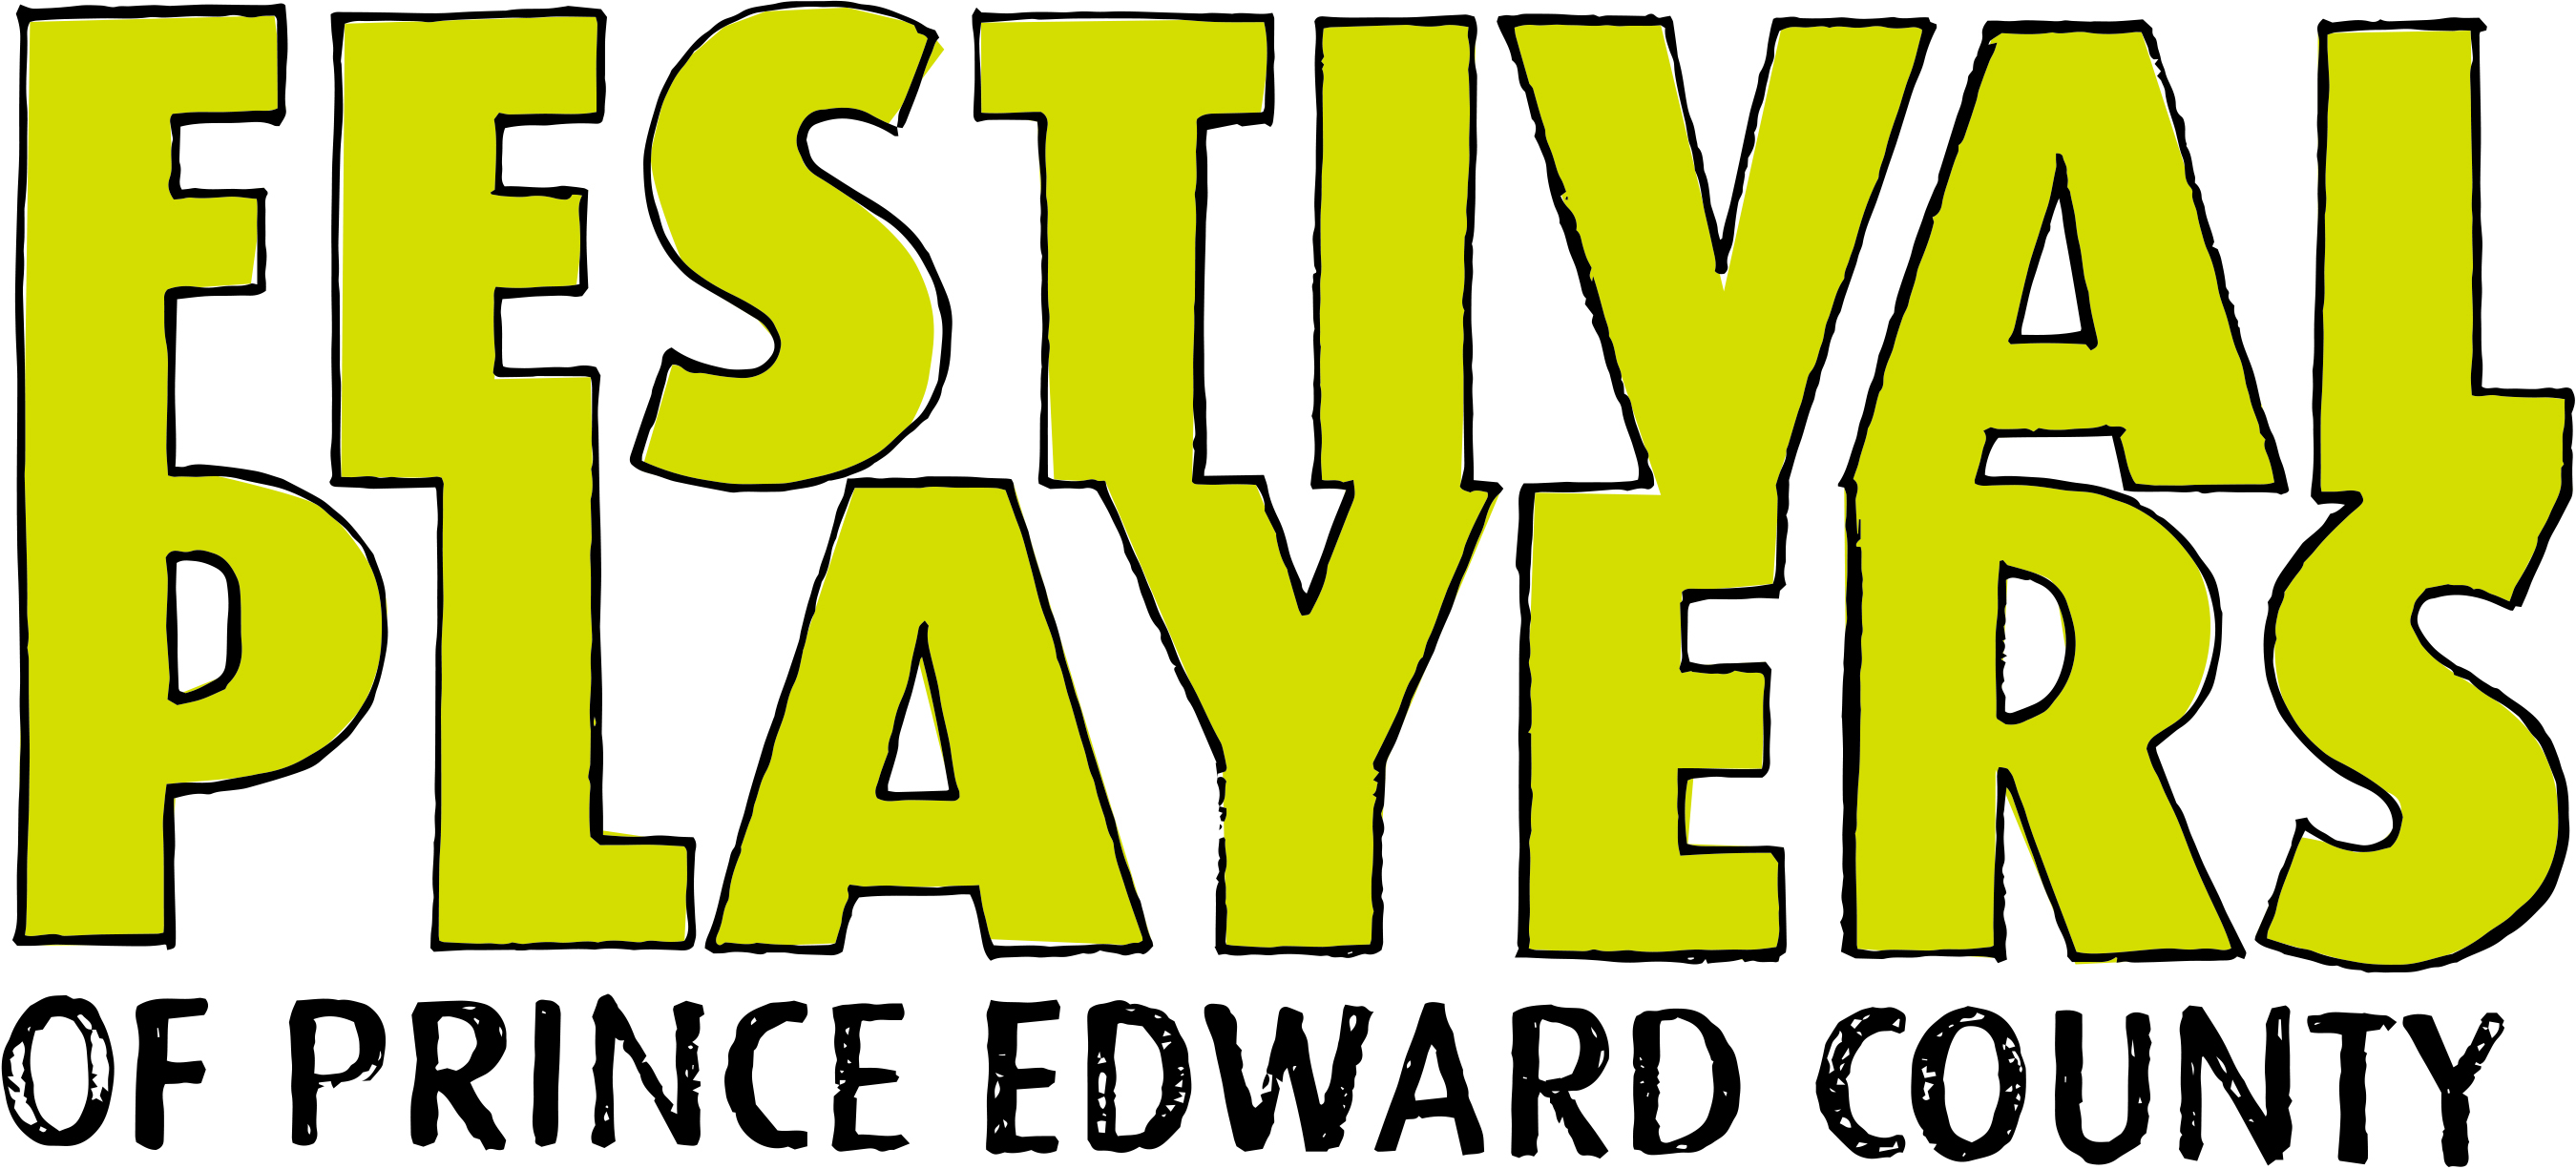 Festival Players of Prince Edward County Summer Season 2019 Logo